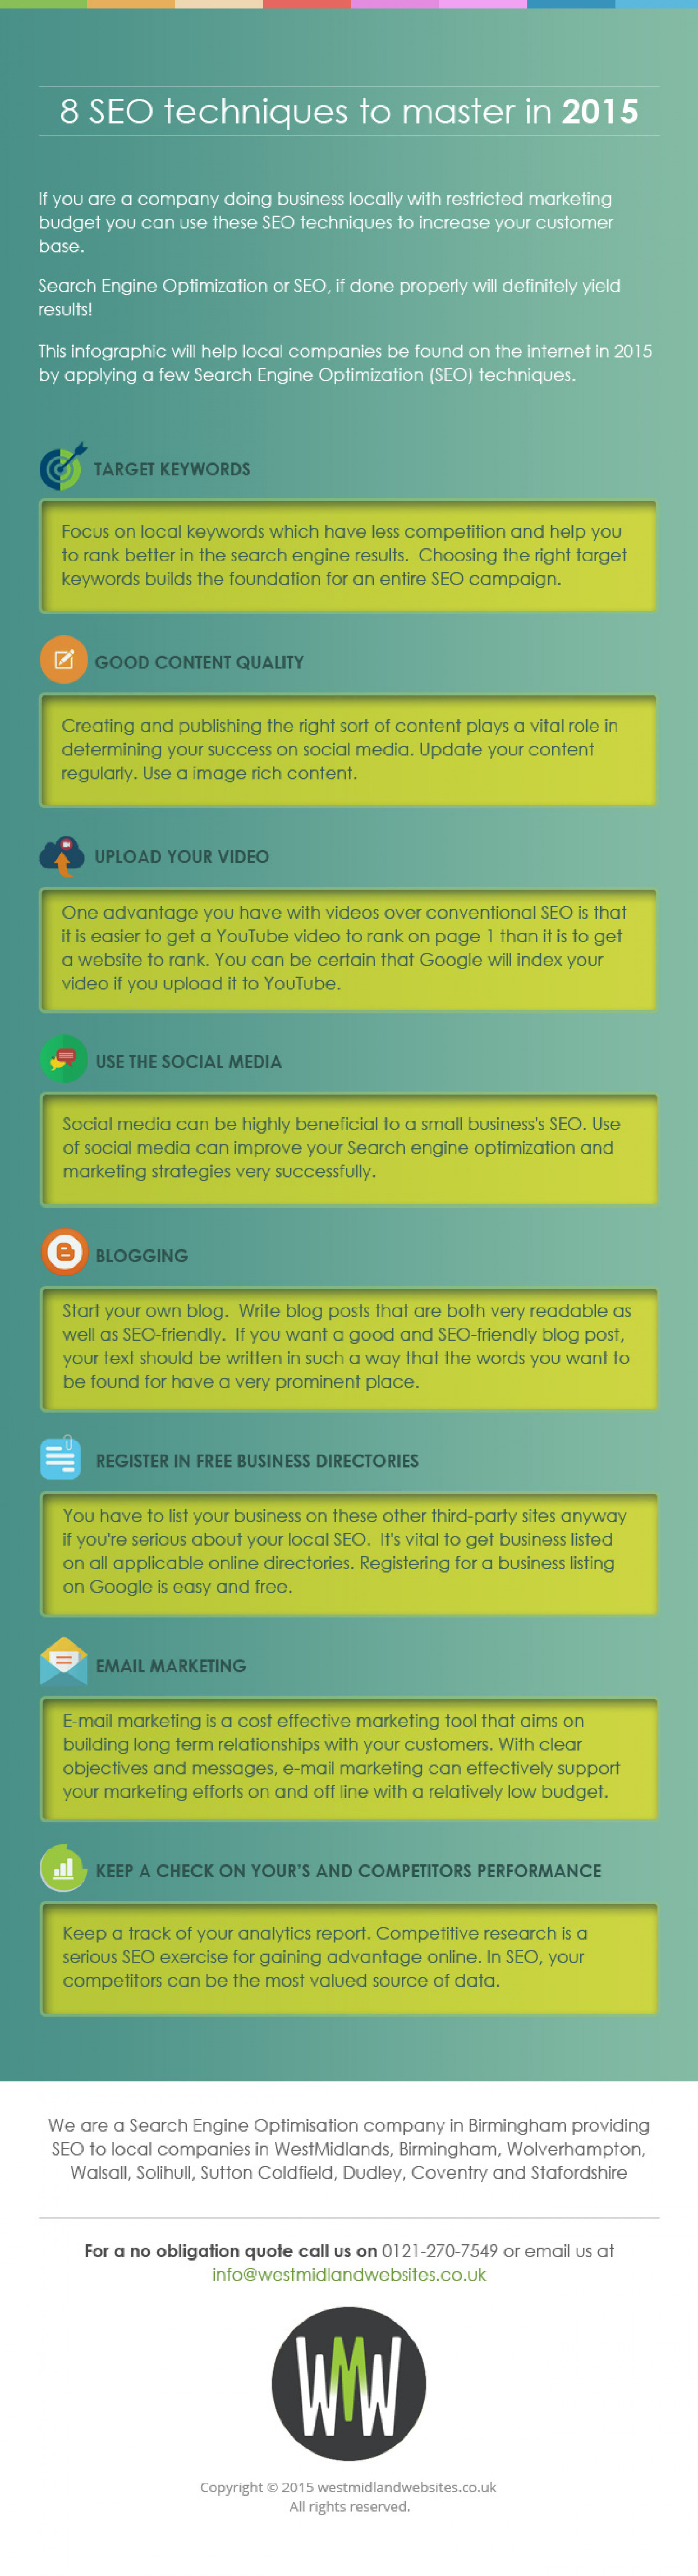 """""""8 SEO techniques to master in 2015"""" from SEO company in Birmingham Infographic"""